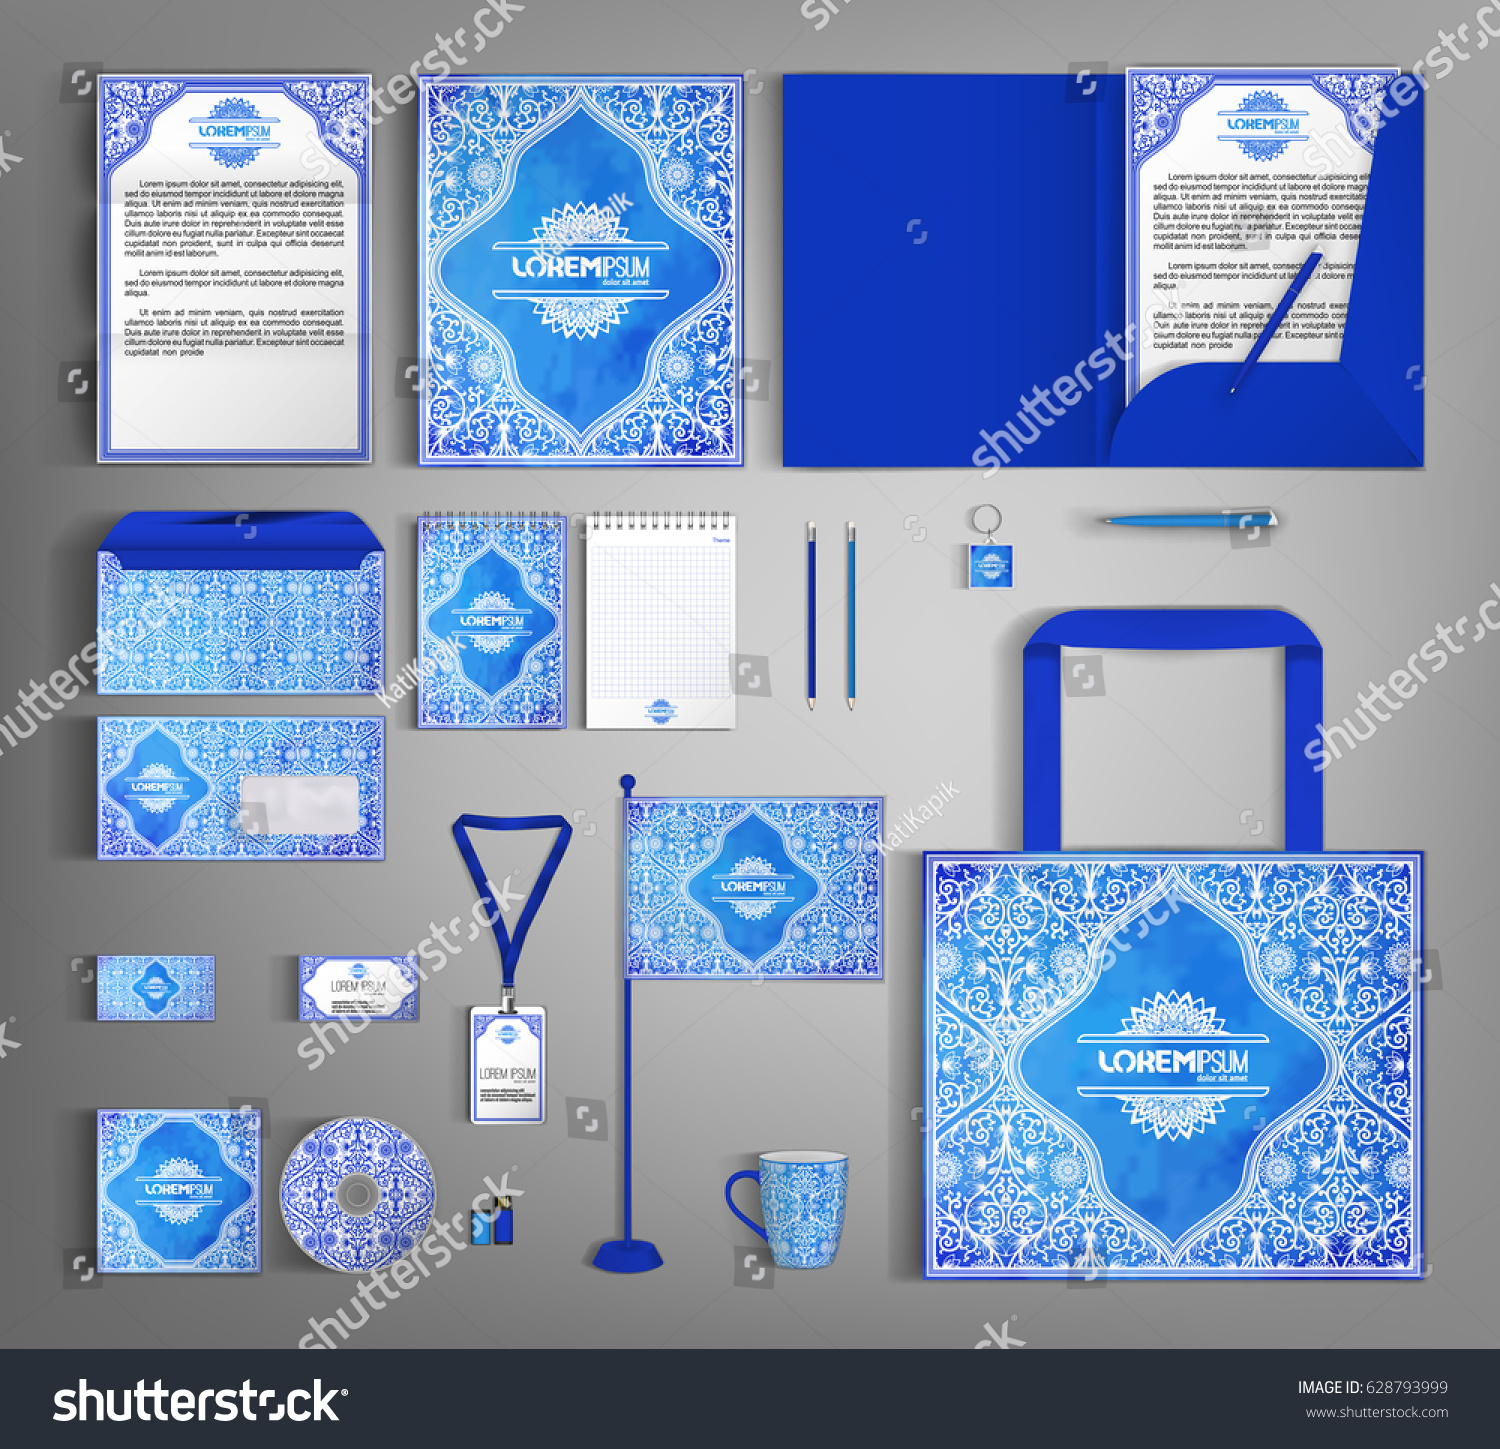 Luxurious Blue Corporate Identity Template Floral Stock Vector